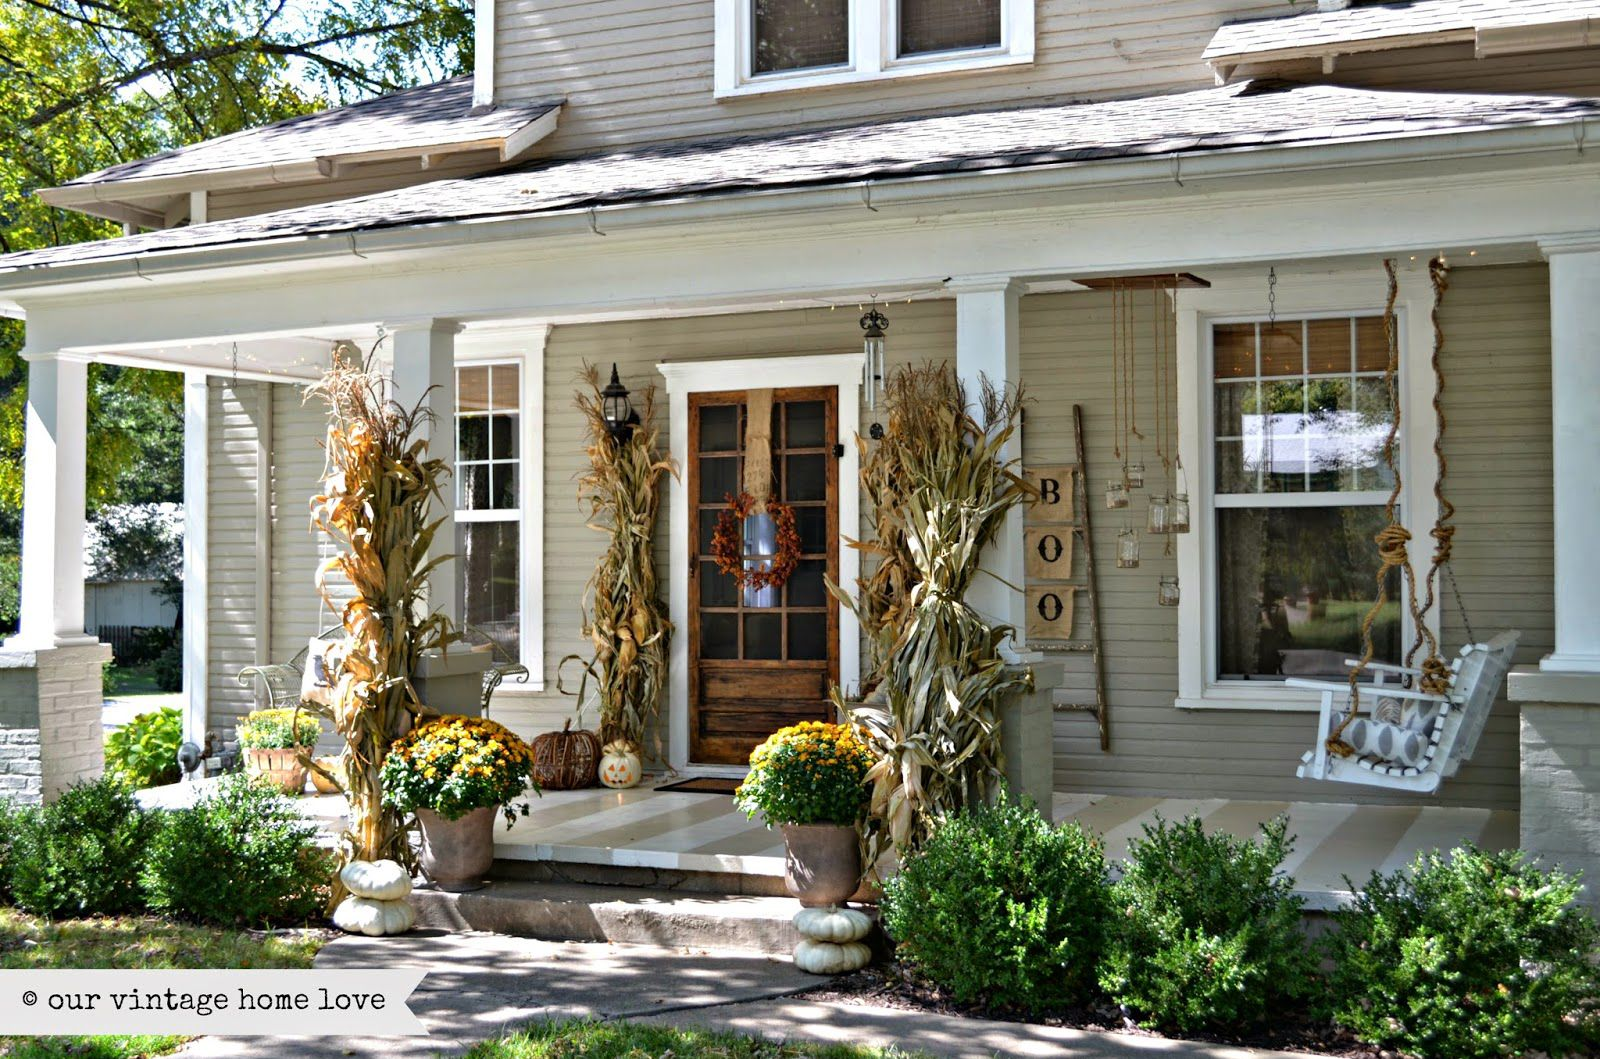 37 Beautiful Ways to Decorate Your Porch for Fall & 37 Beautiful Ways to Decorate Your Porch for Fall | Corn stalks ...